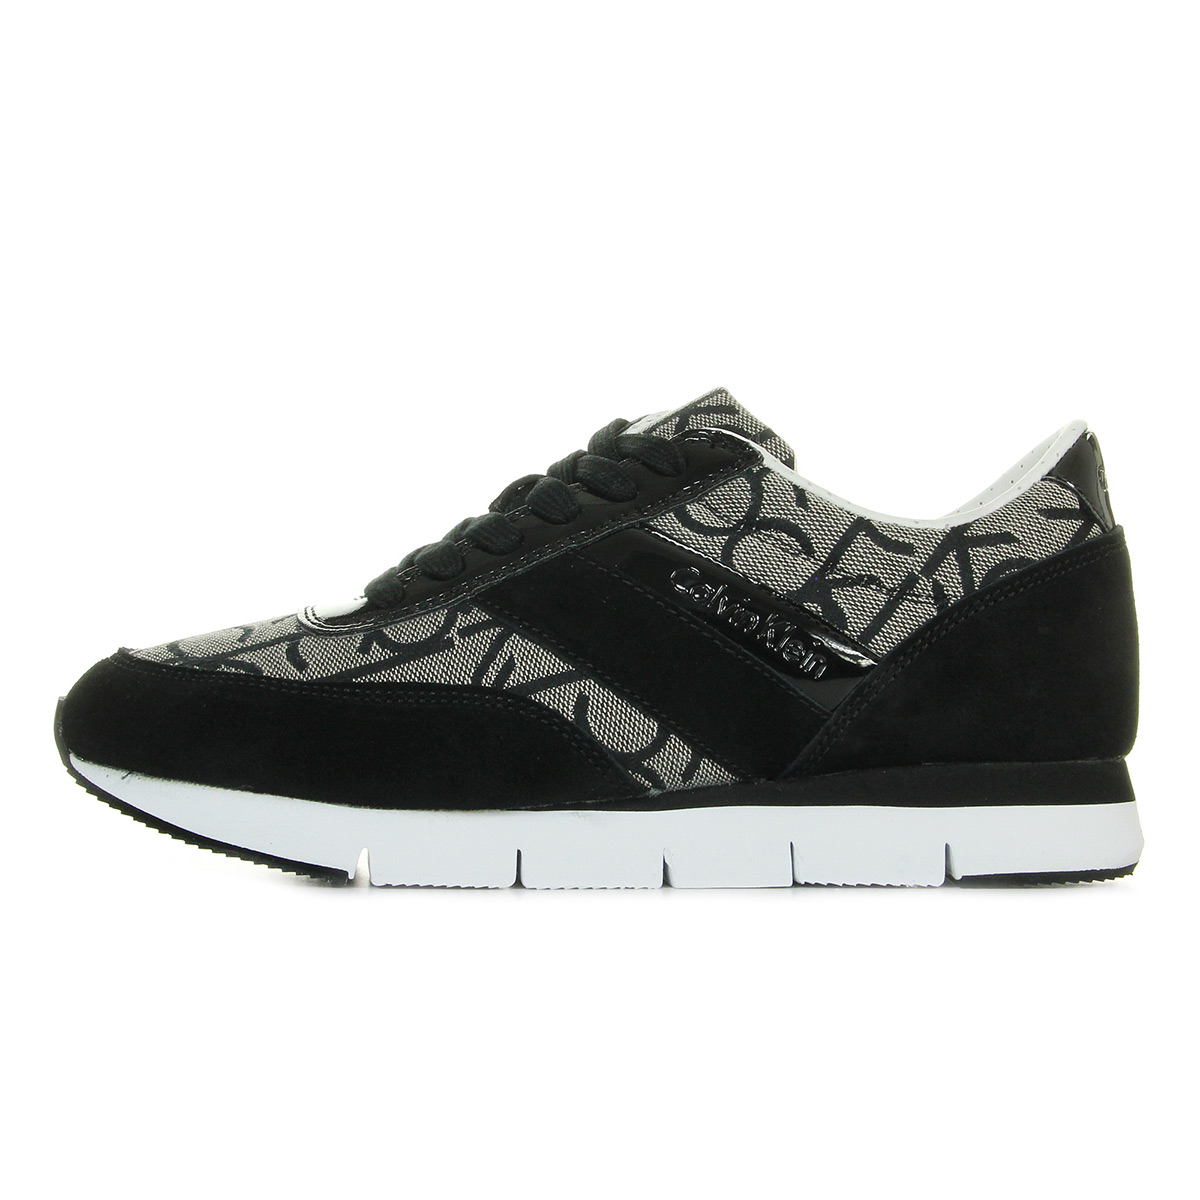 Calvin Klein Tea CK Logo Jacquard Patent RE9267GRANITEBLACK, Baskets mode